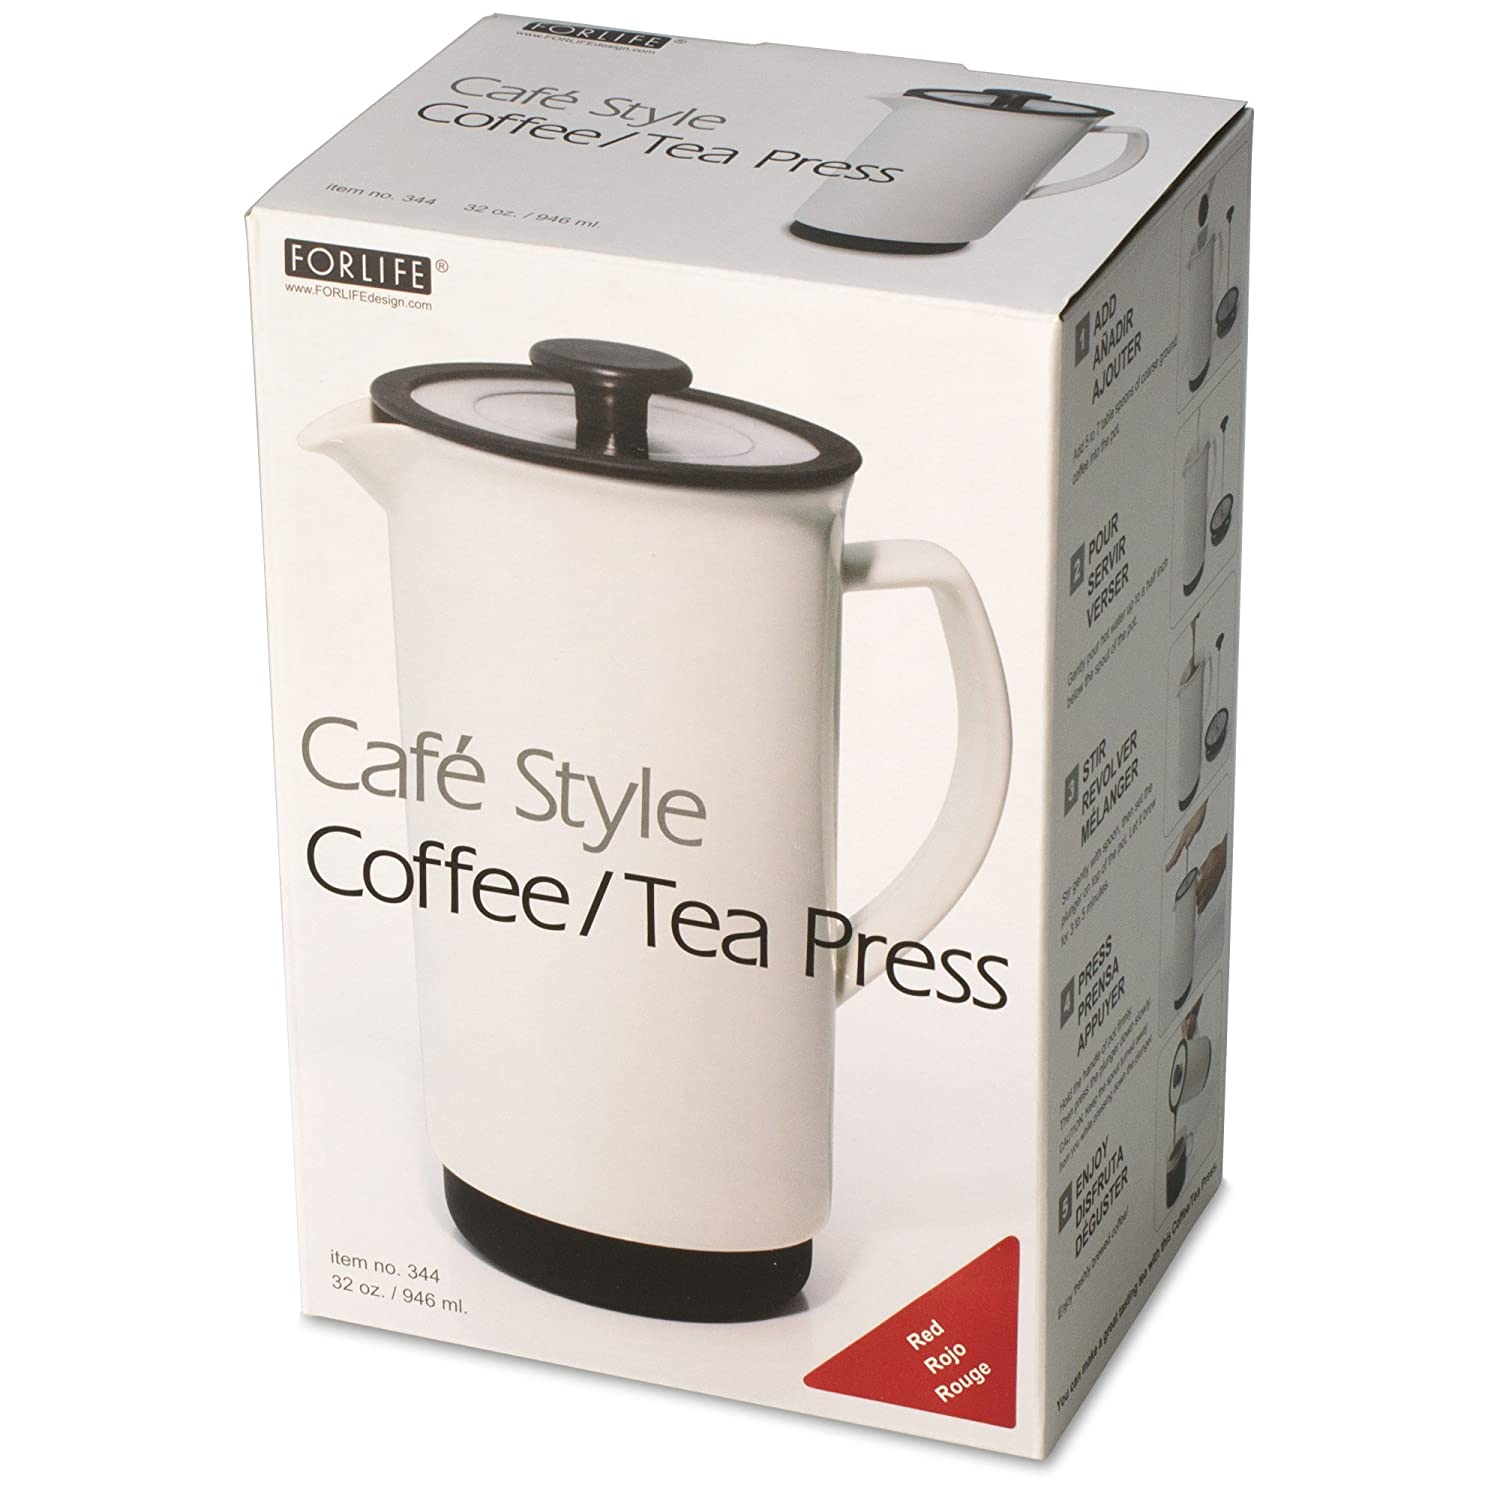 Amazon.com: FORLIFE Cafe Style Coffee/Tea Press, 32-Ounce, Gray: Kitchen & Dining